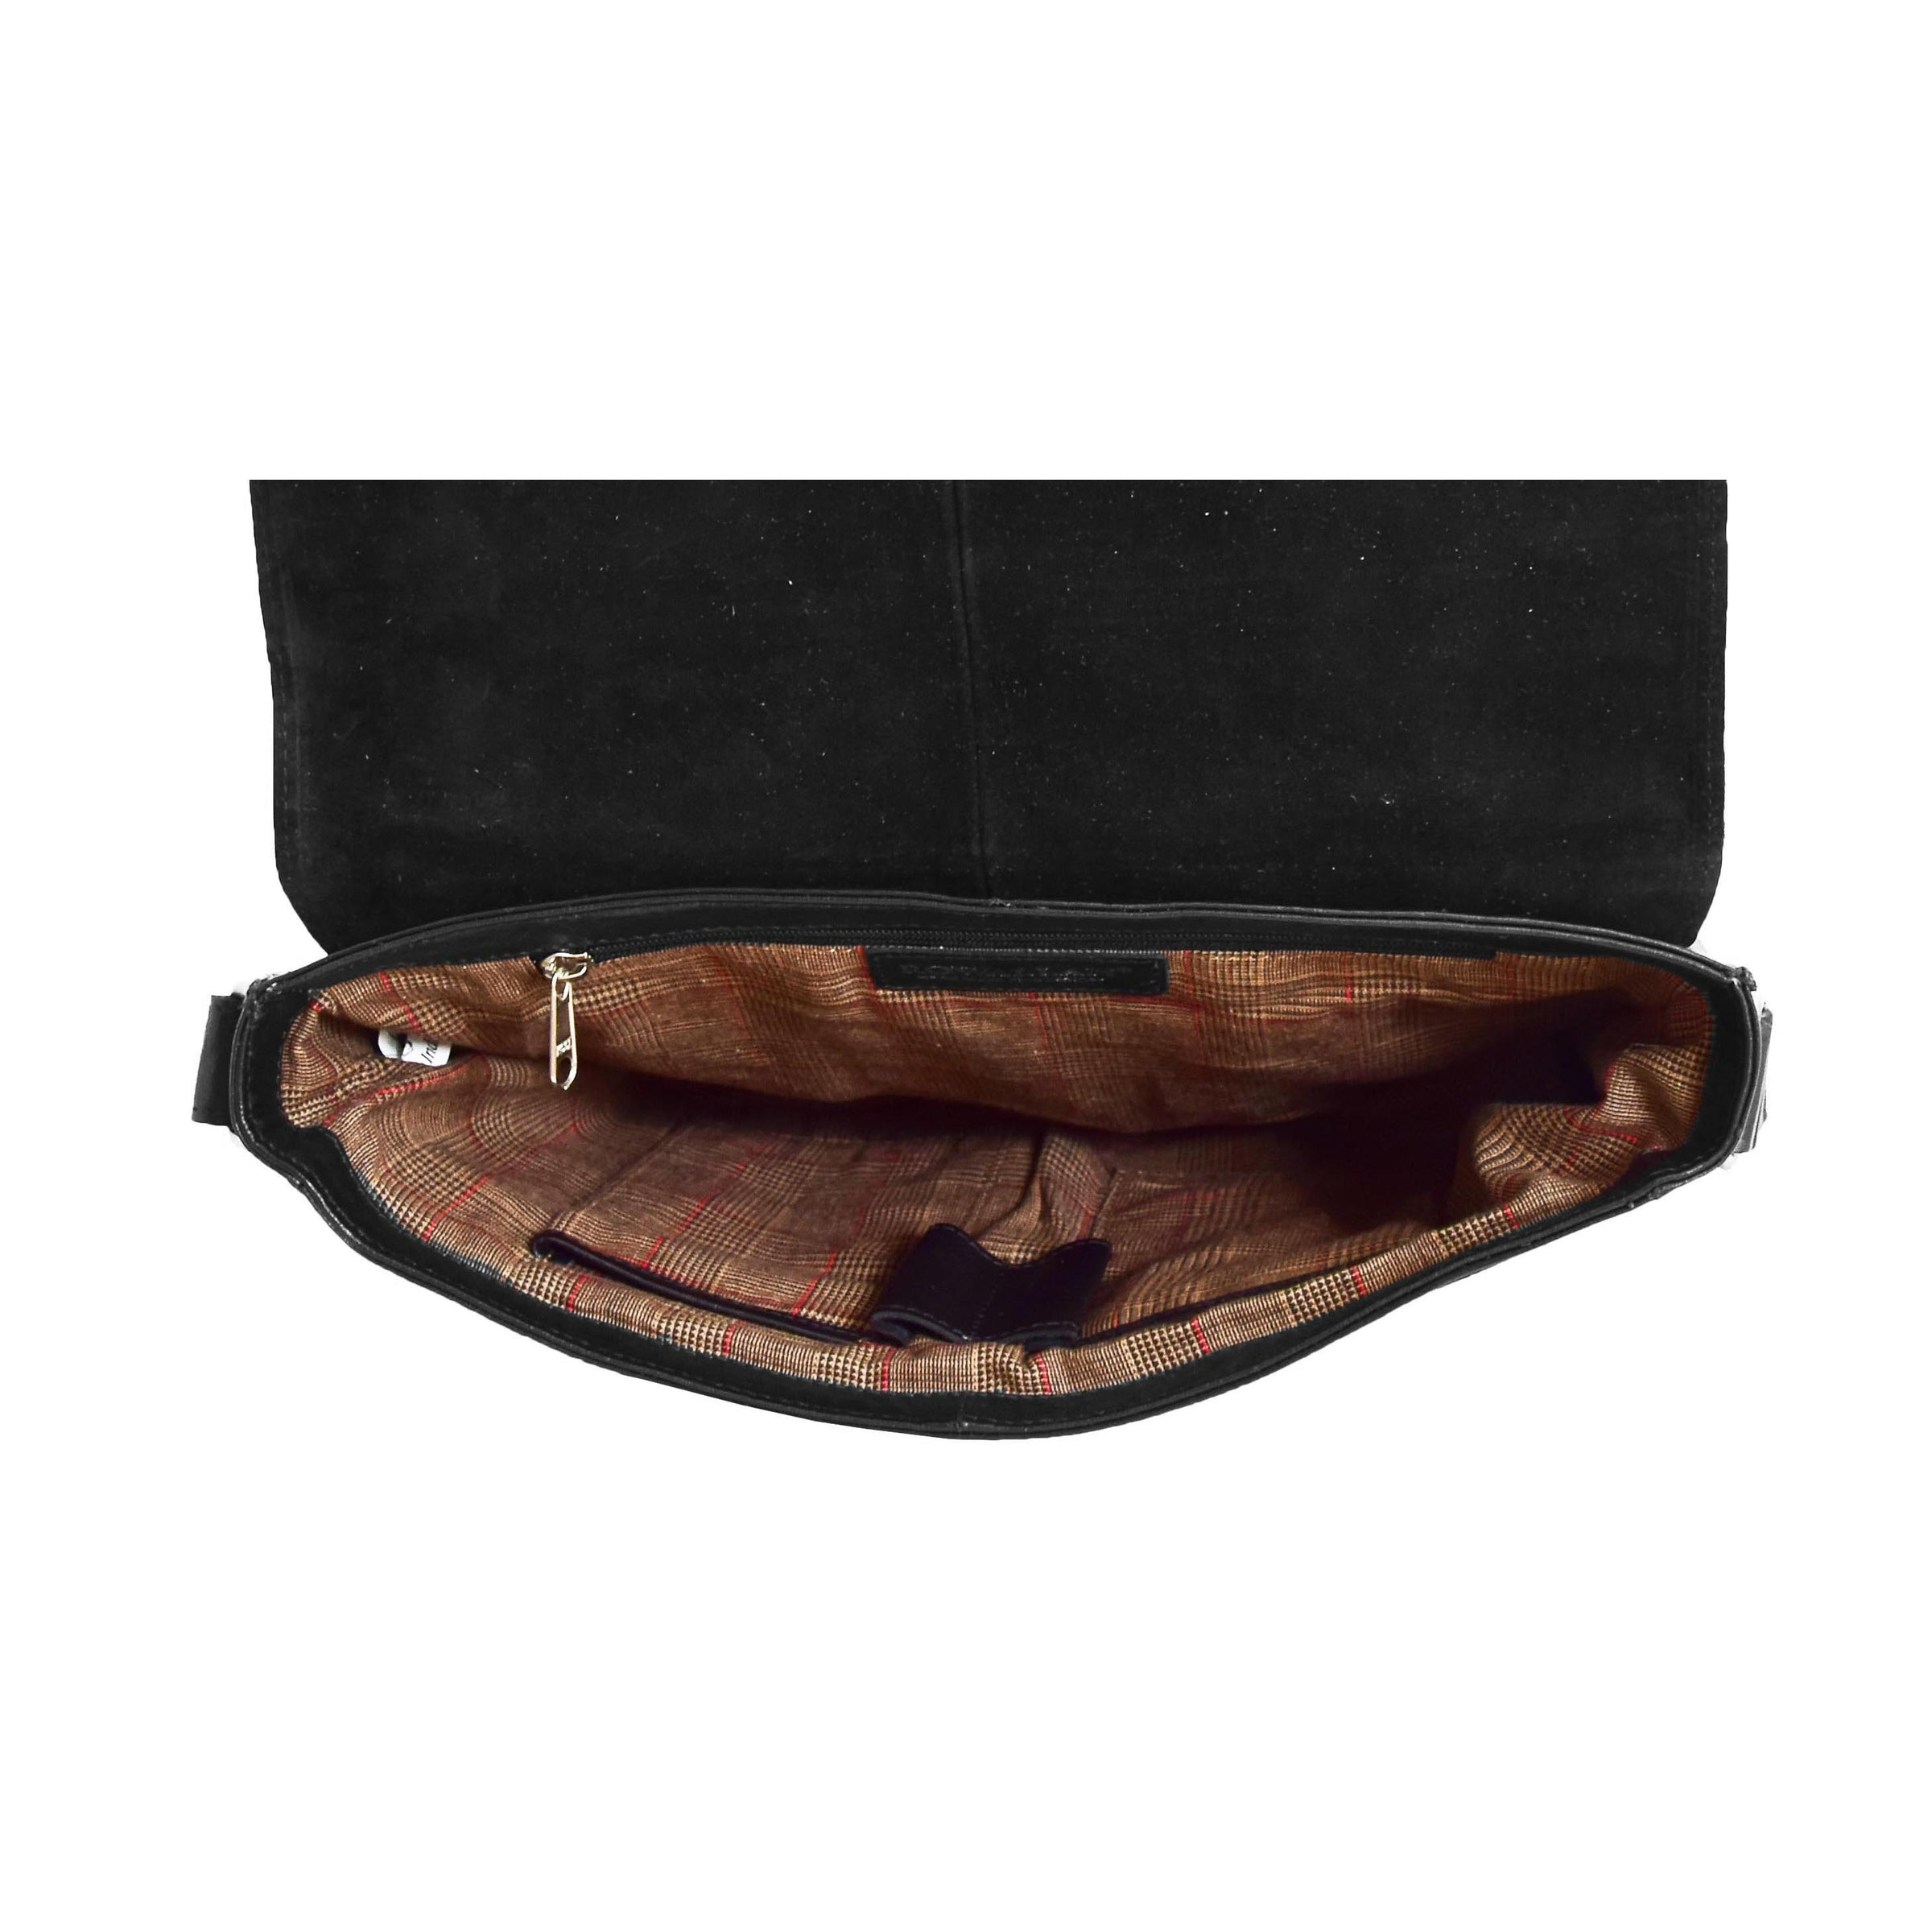 b17cfd92b Mens Leather Flap Over Cross Body Bag Black | House of Leather